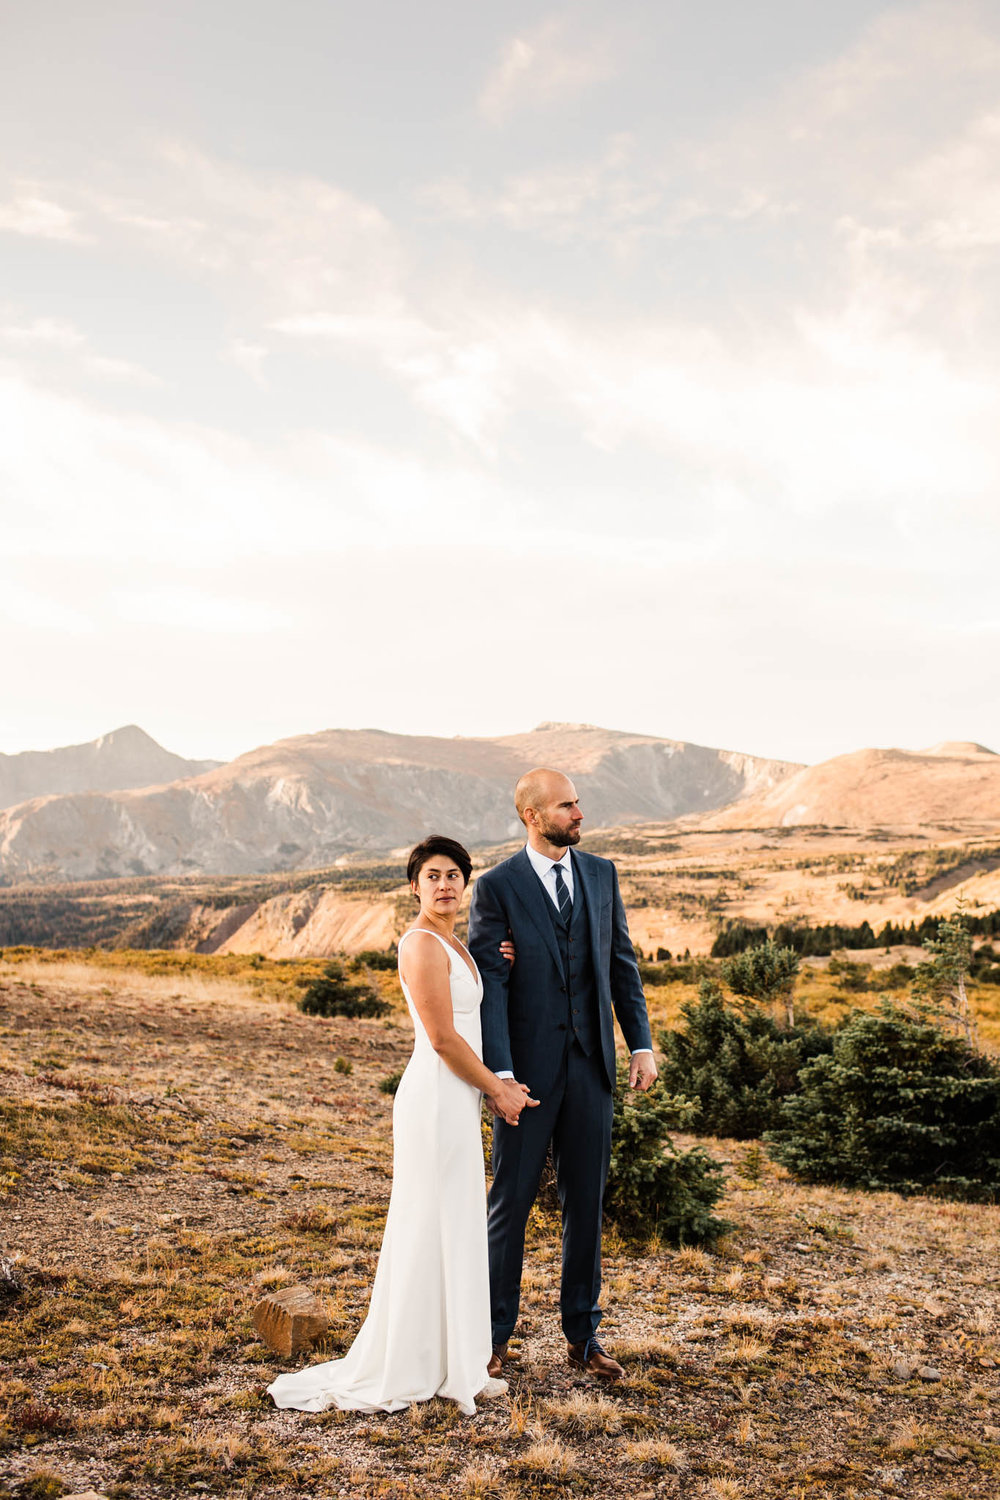 sunrise post-wedding session in the mountains | Best Colorado wedding photographers